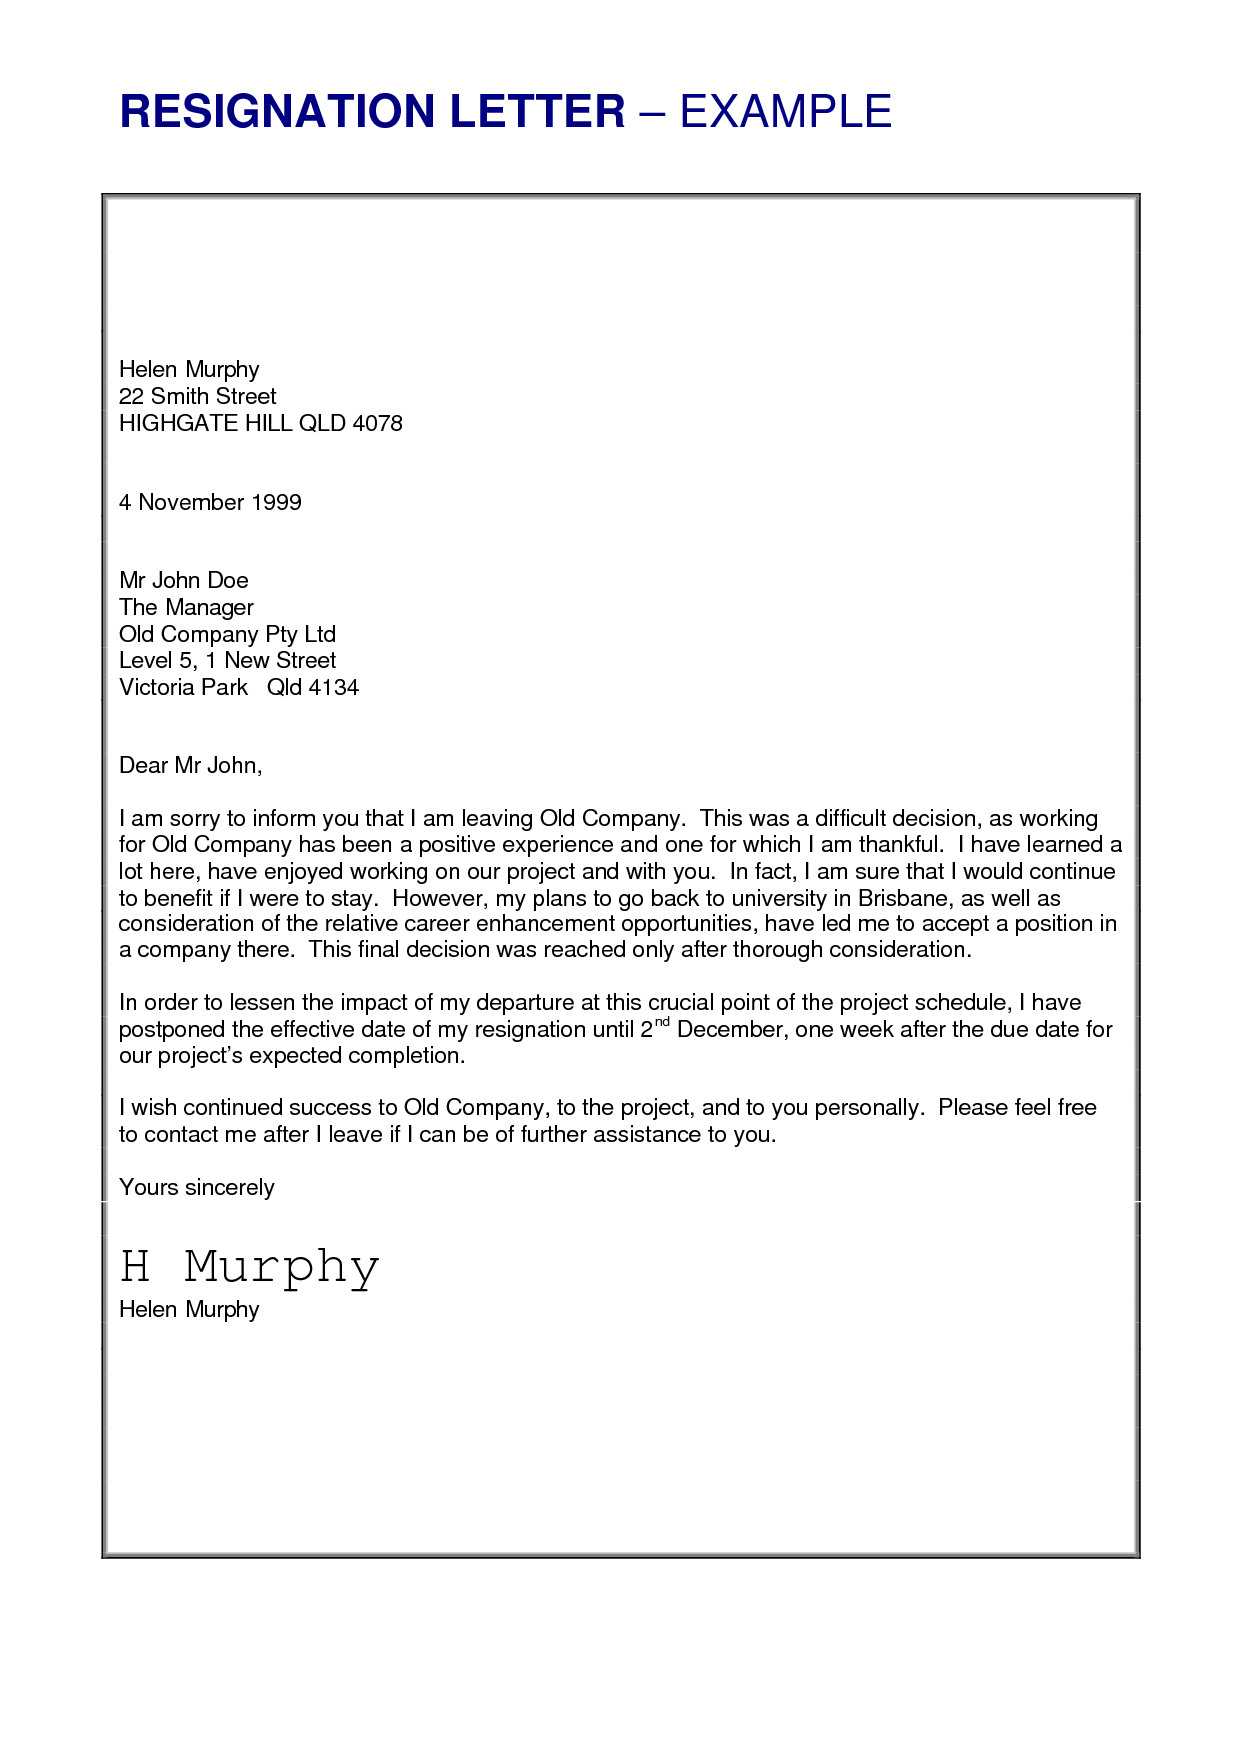 Free Resignation Letter Template Microsoft Word Download - Job Resignation Letter Sample Loganun Blog Job